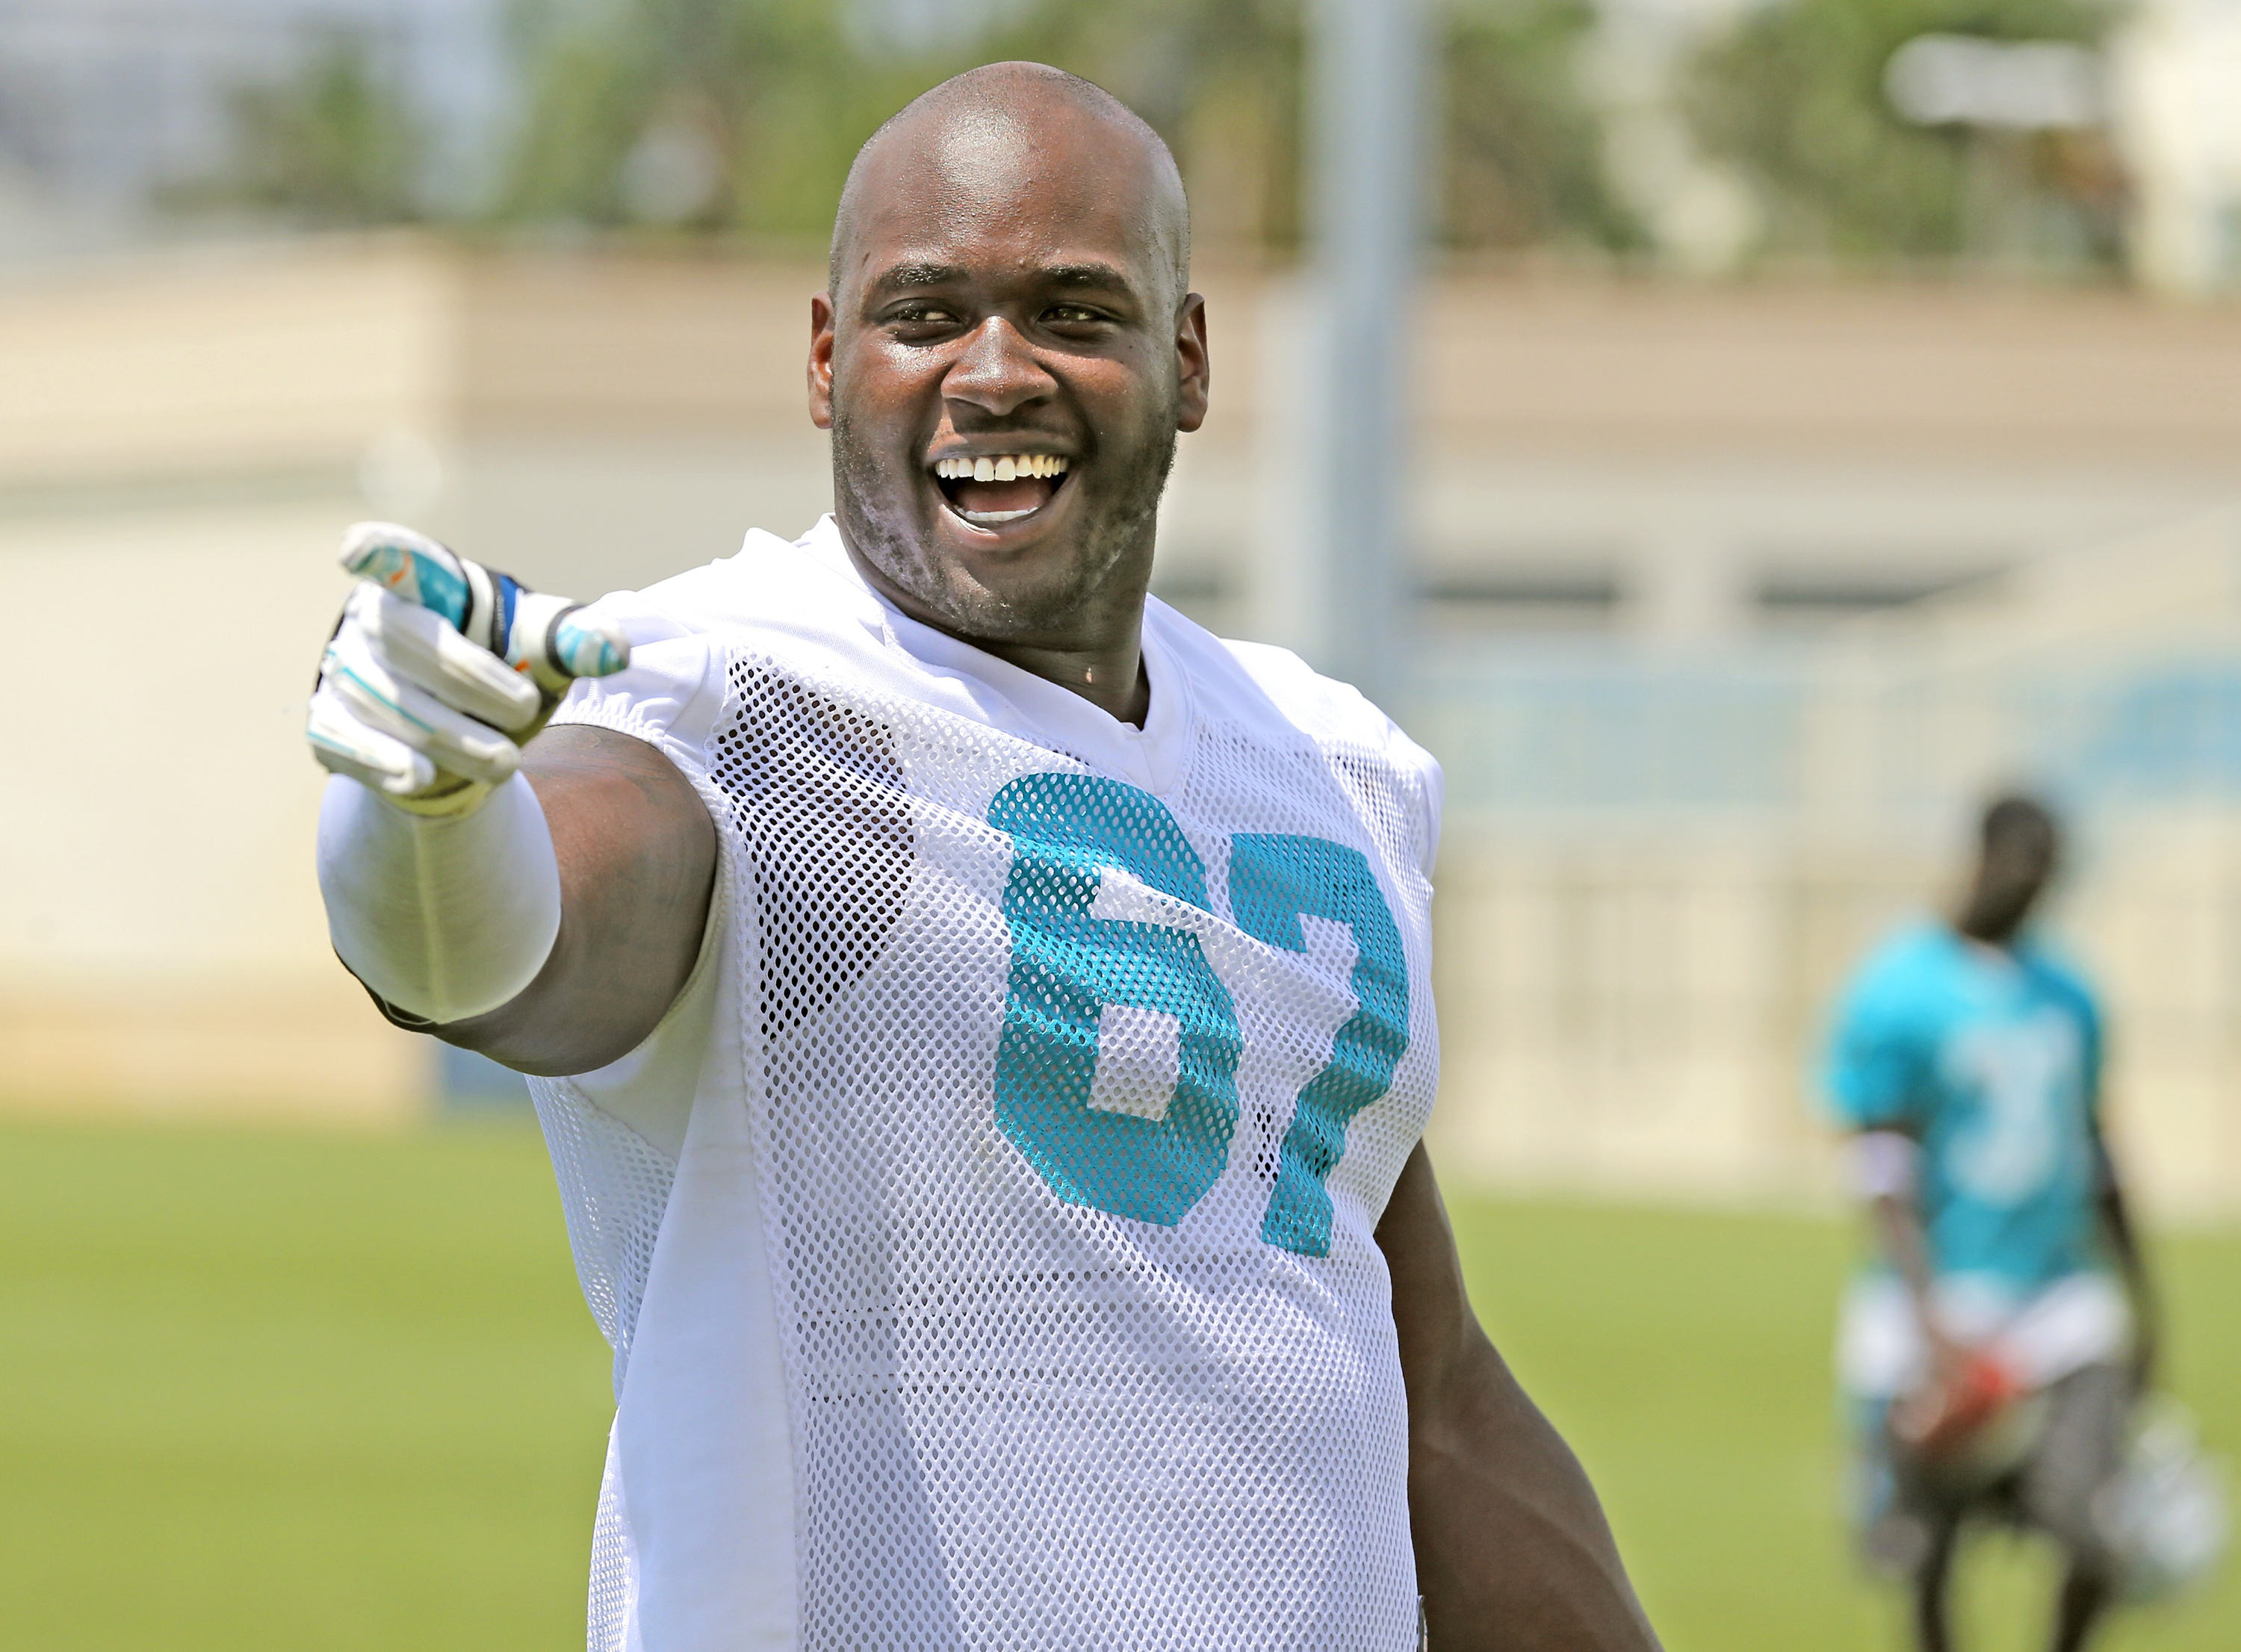 NFL rumors: Why Giants should trade for Miami Dolphins' LT Laremy Tunsil